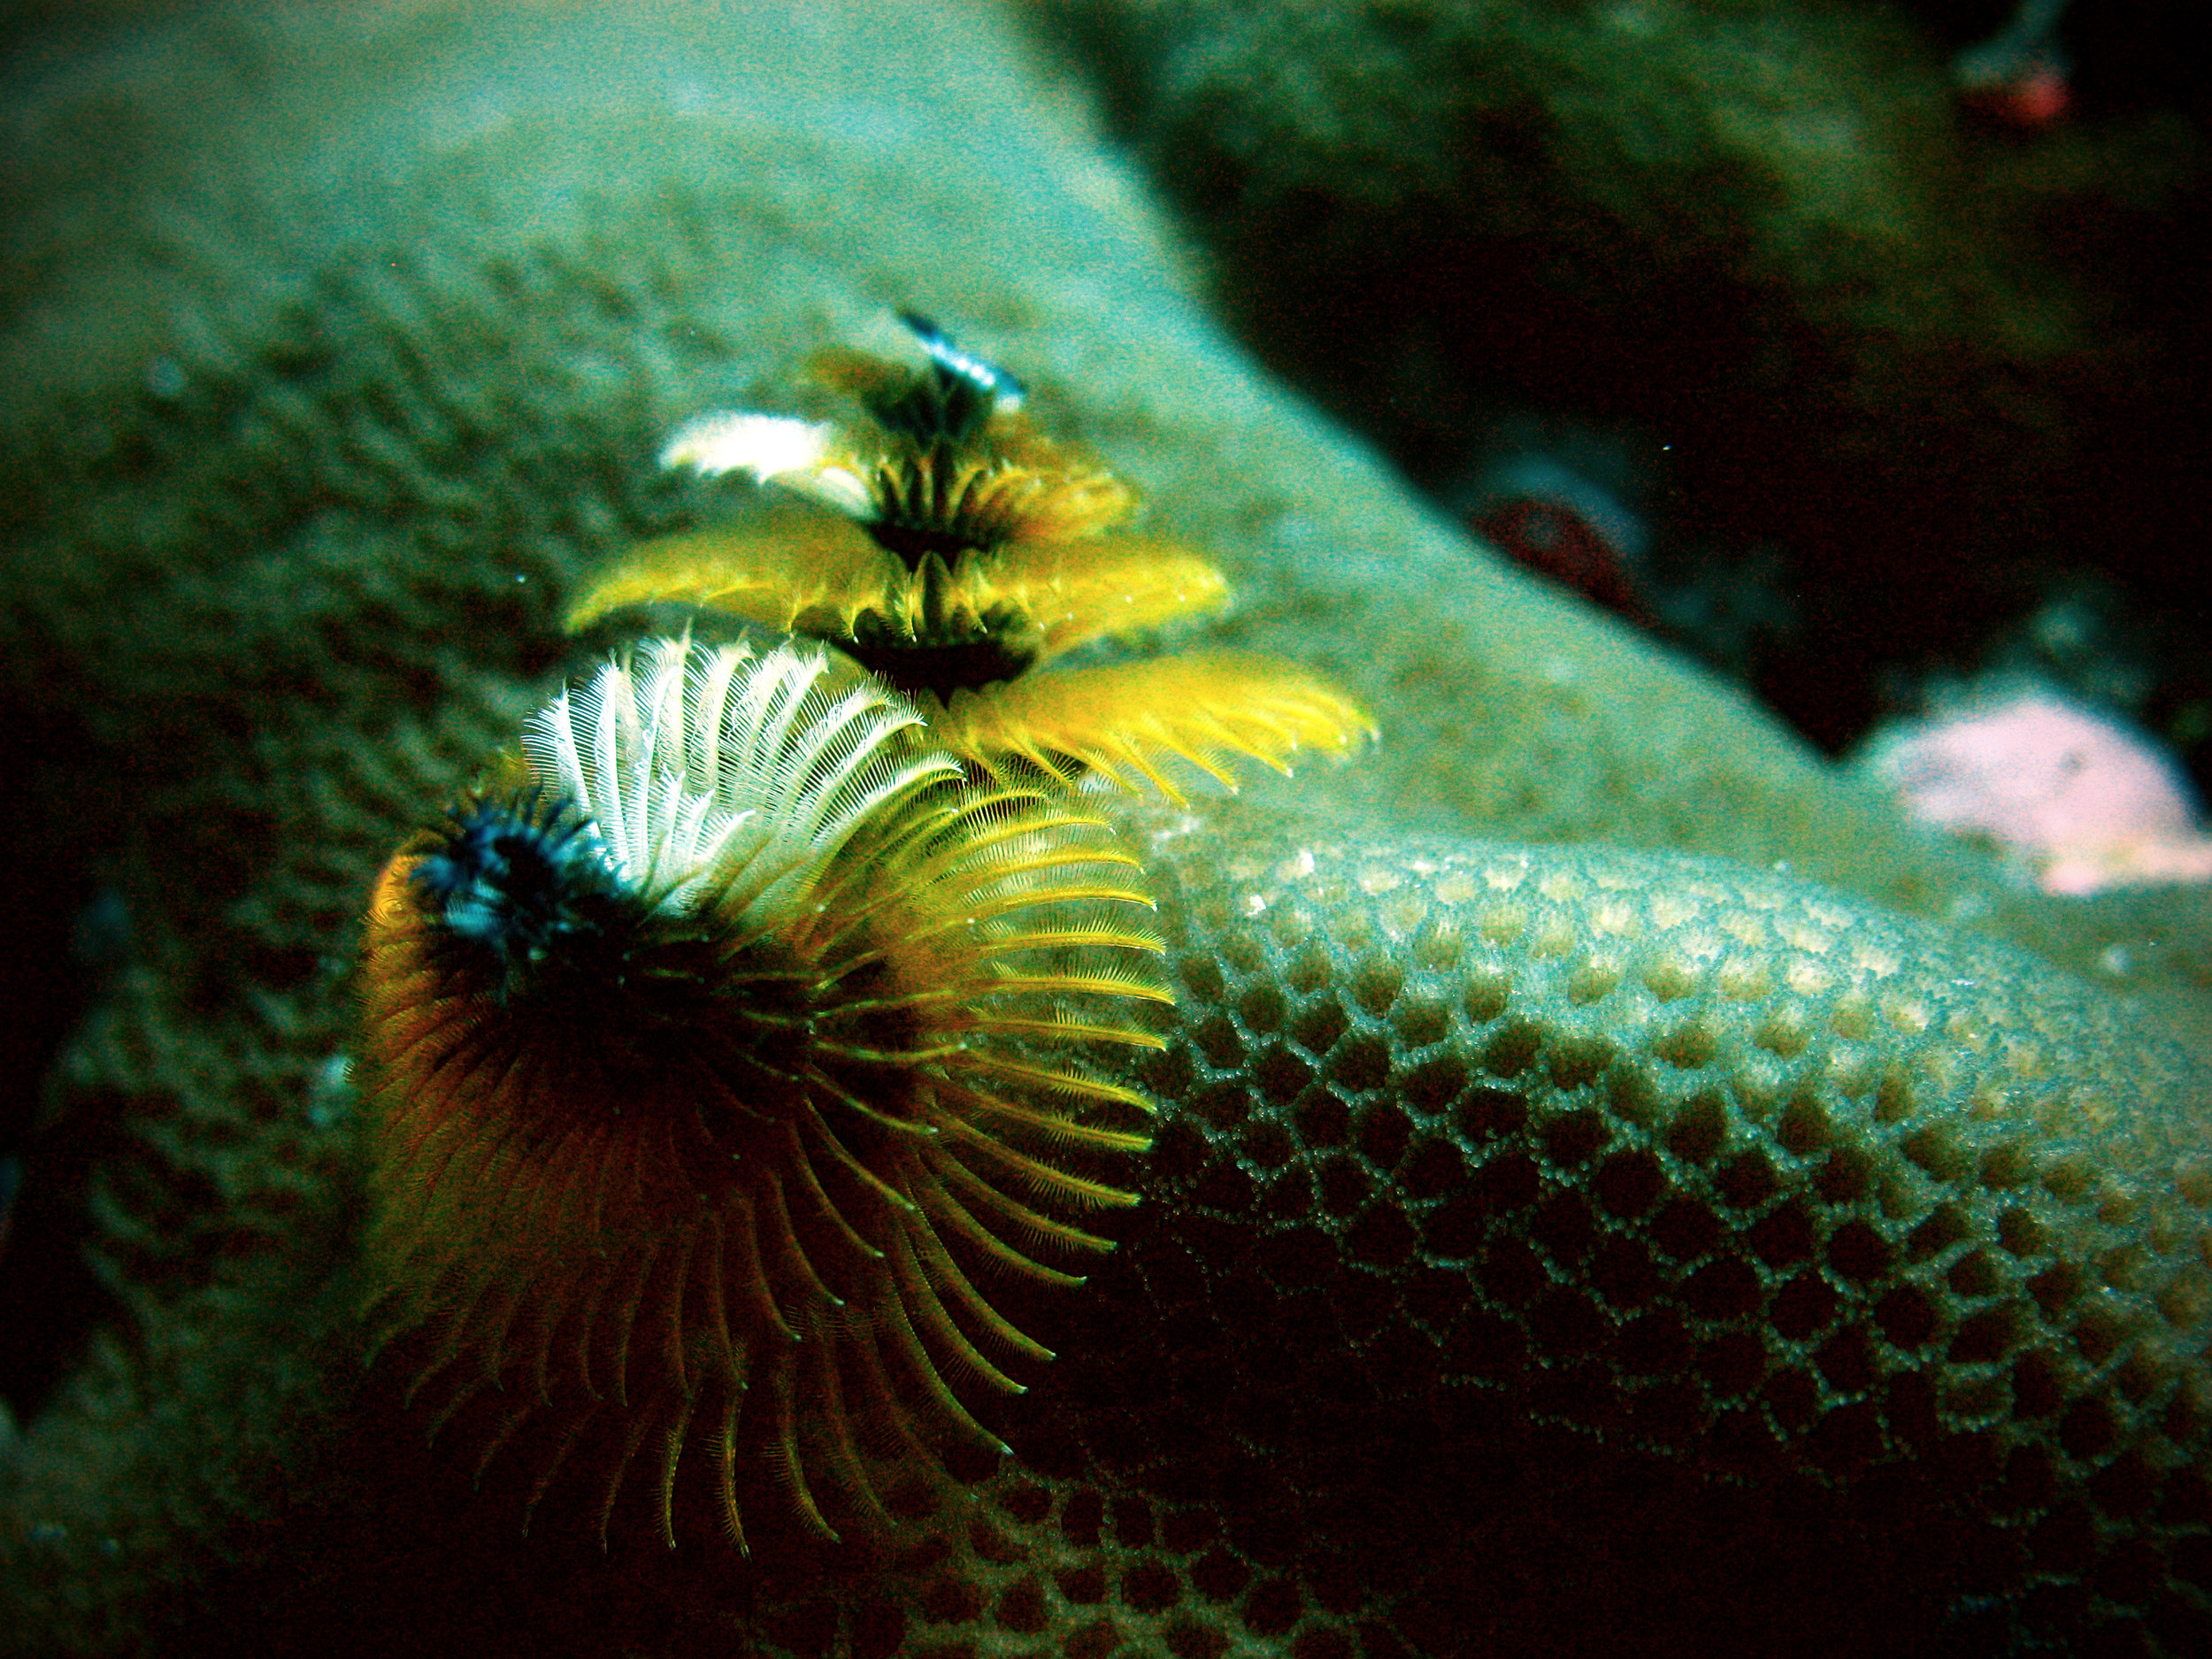 Also known as the Christmas tree worm. Maldives. Canon PowerShot A630. (2008)